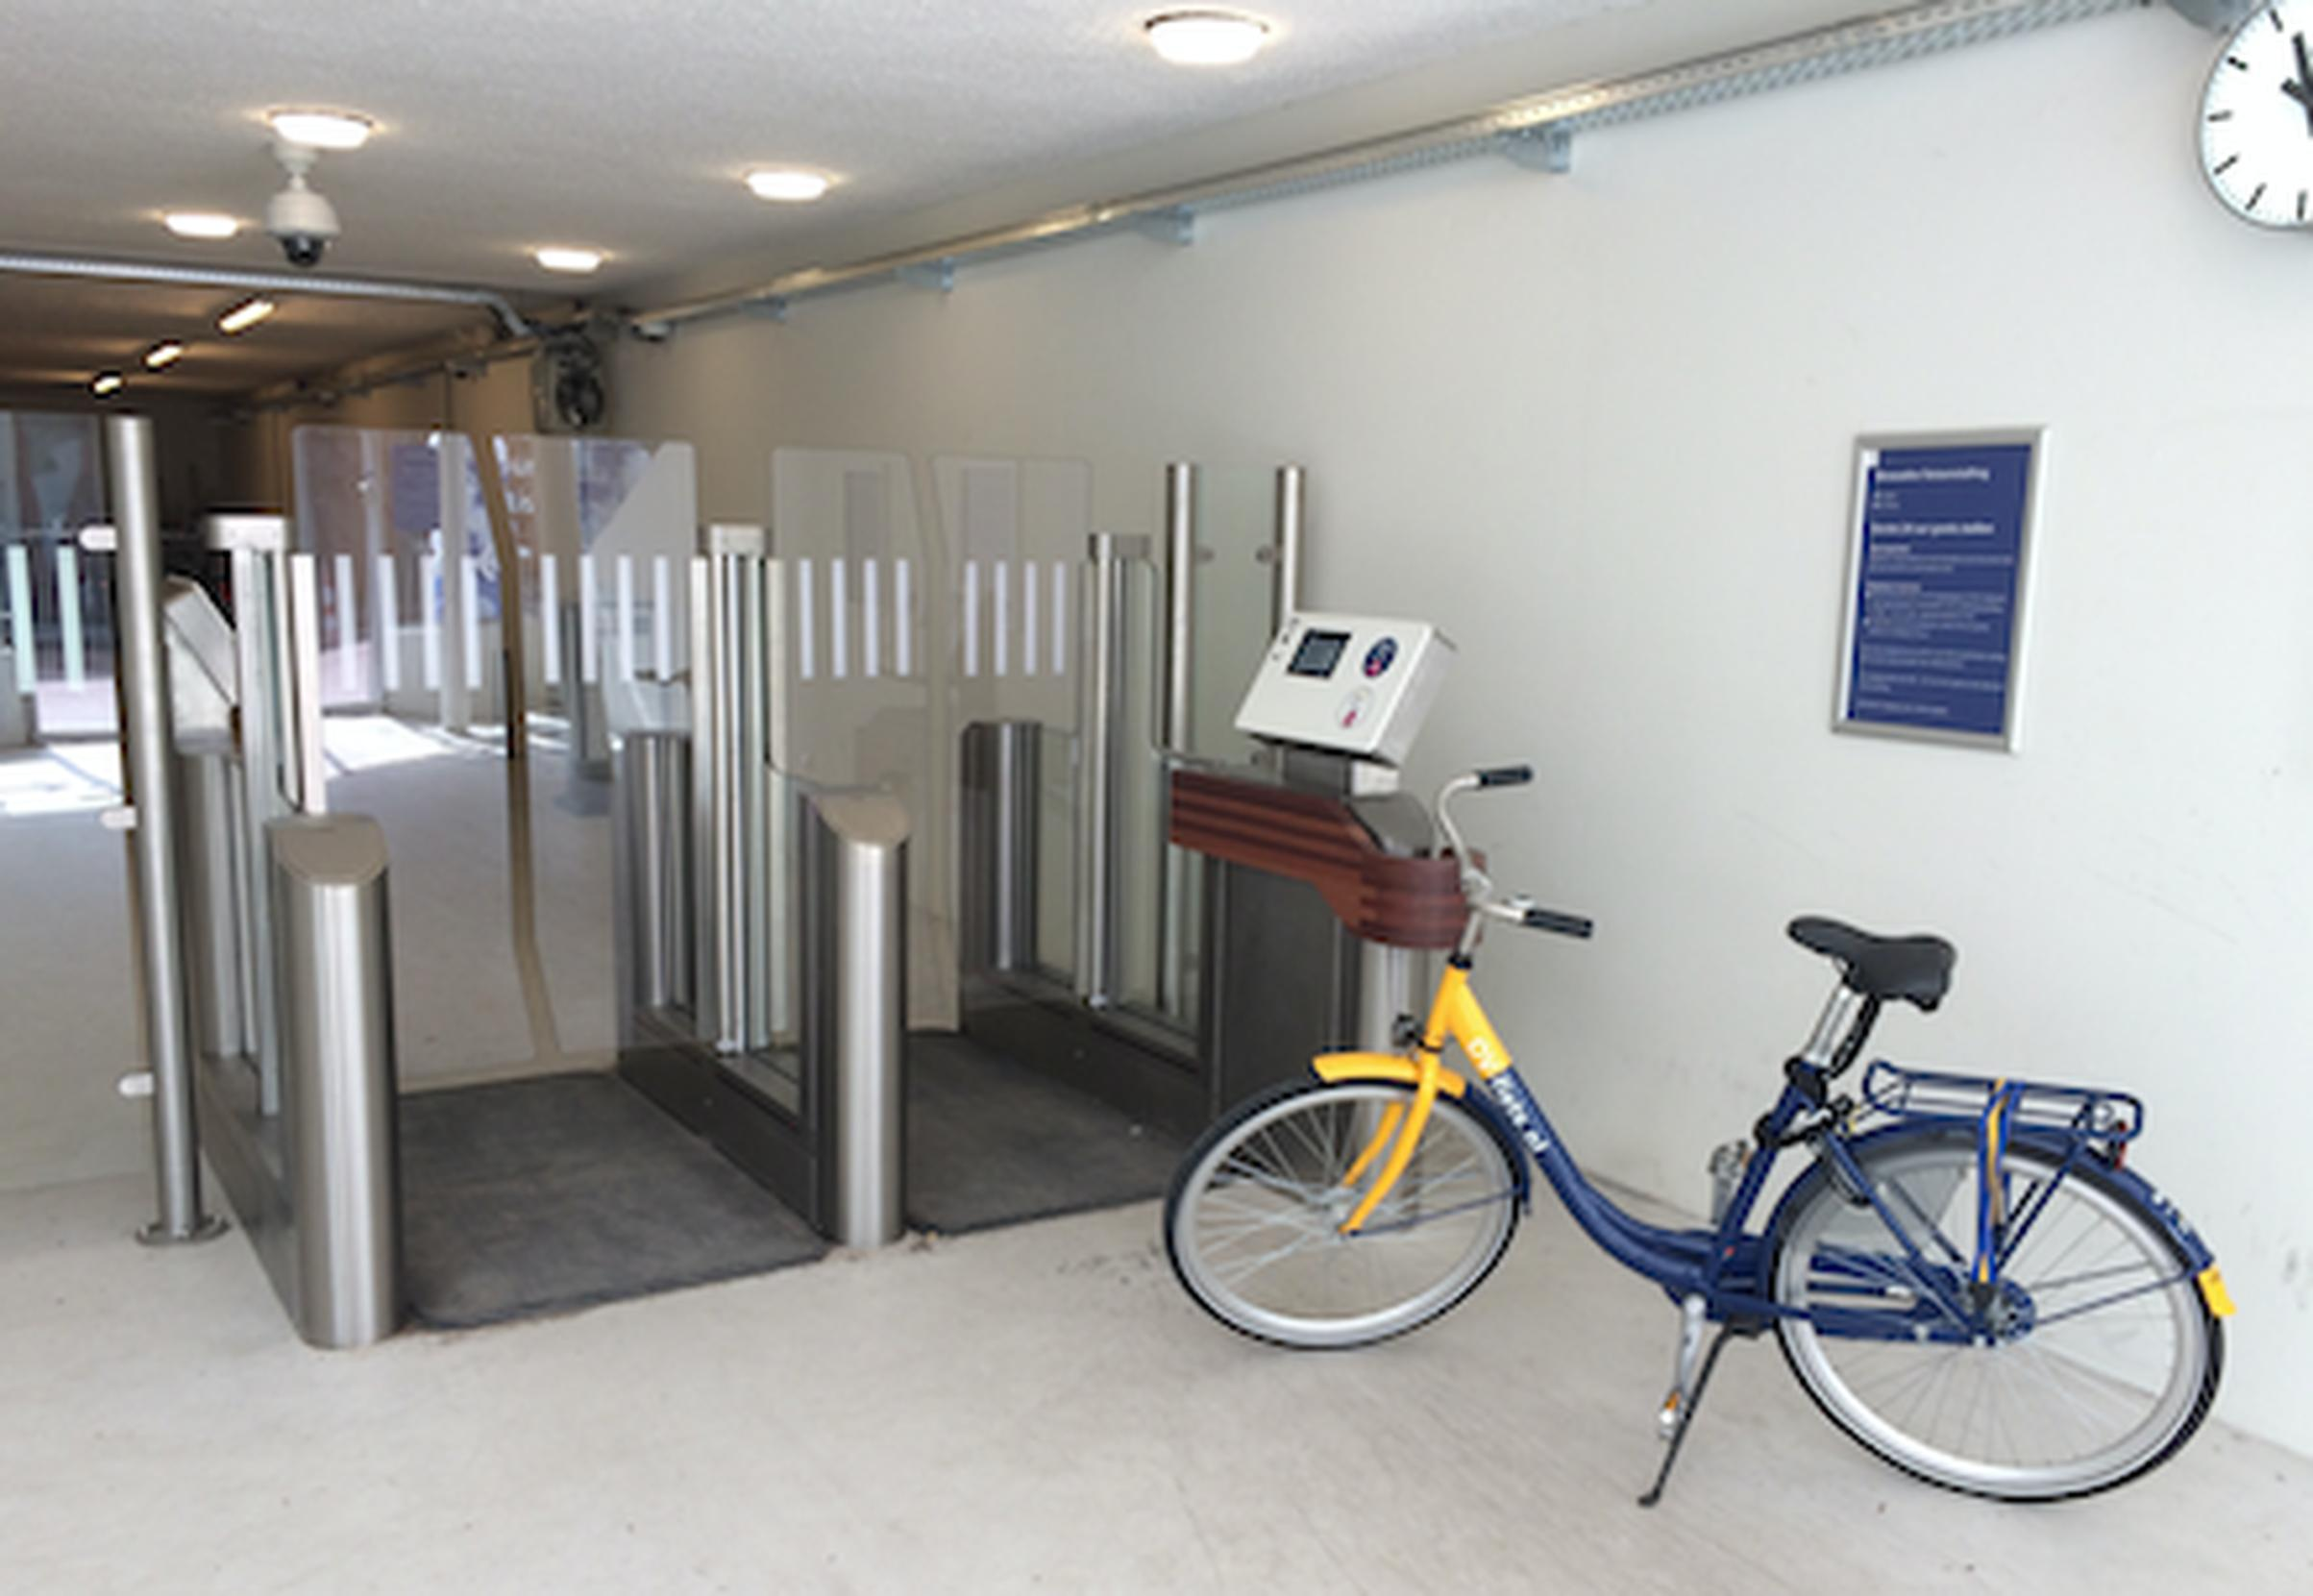 Dutch rail stations to get gate-controlled bike parking